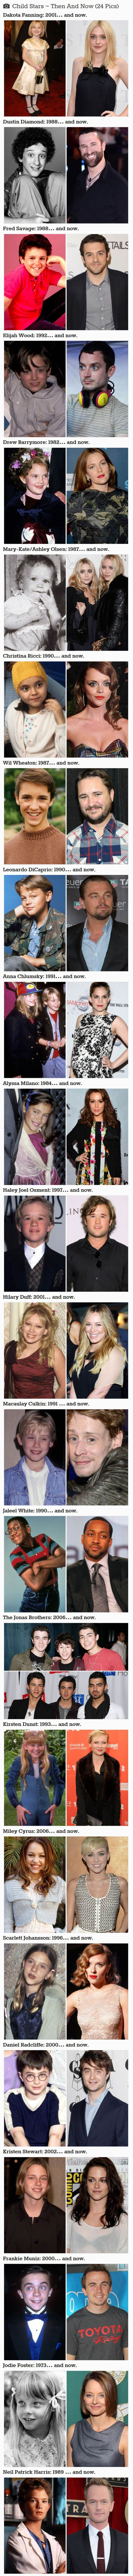 Child Stars - Then And Now